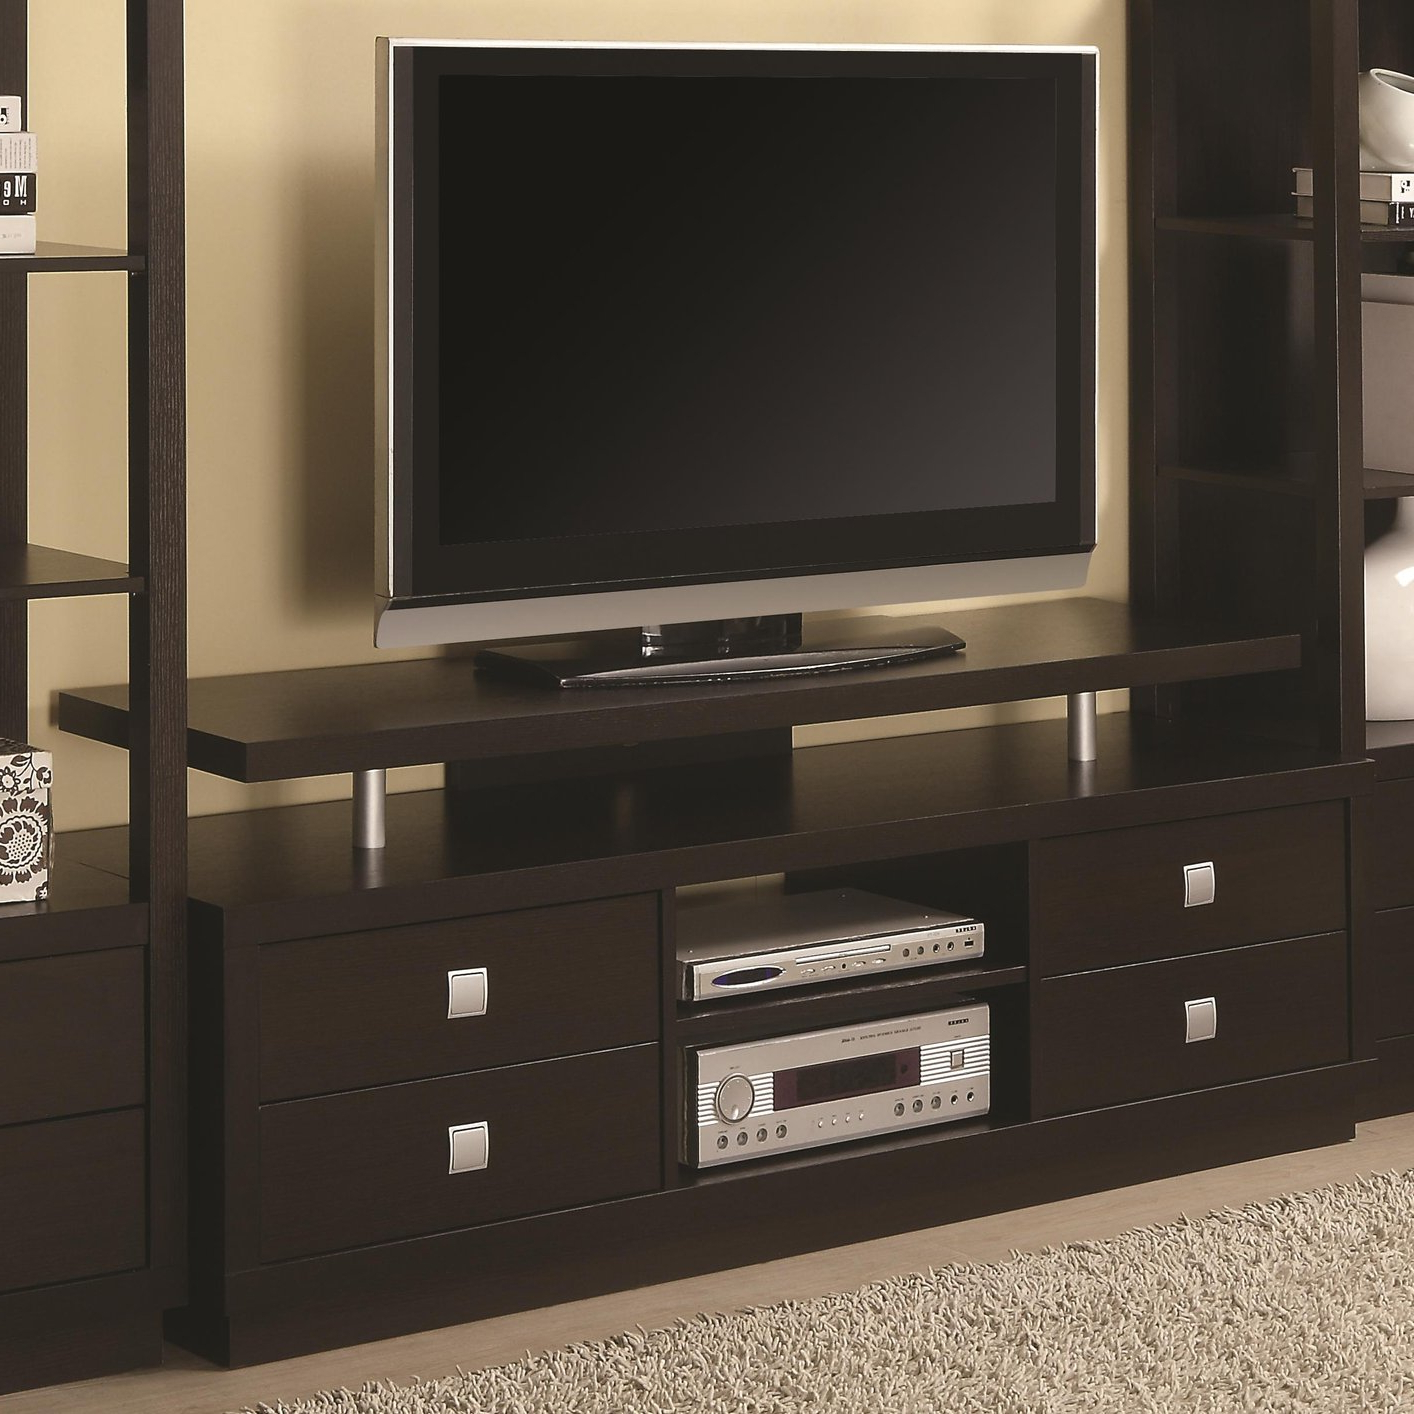 Best And Newest Brown Wood Tv Stand – Steal A Sofa Furniture Outlet Los Angeles Ca For Wood Tv Armoire Stands (View 11 of 20)